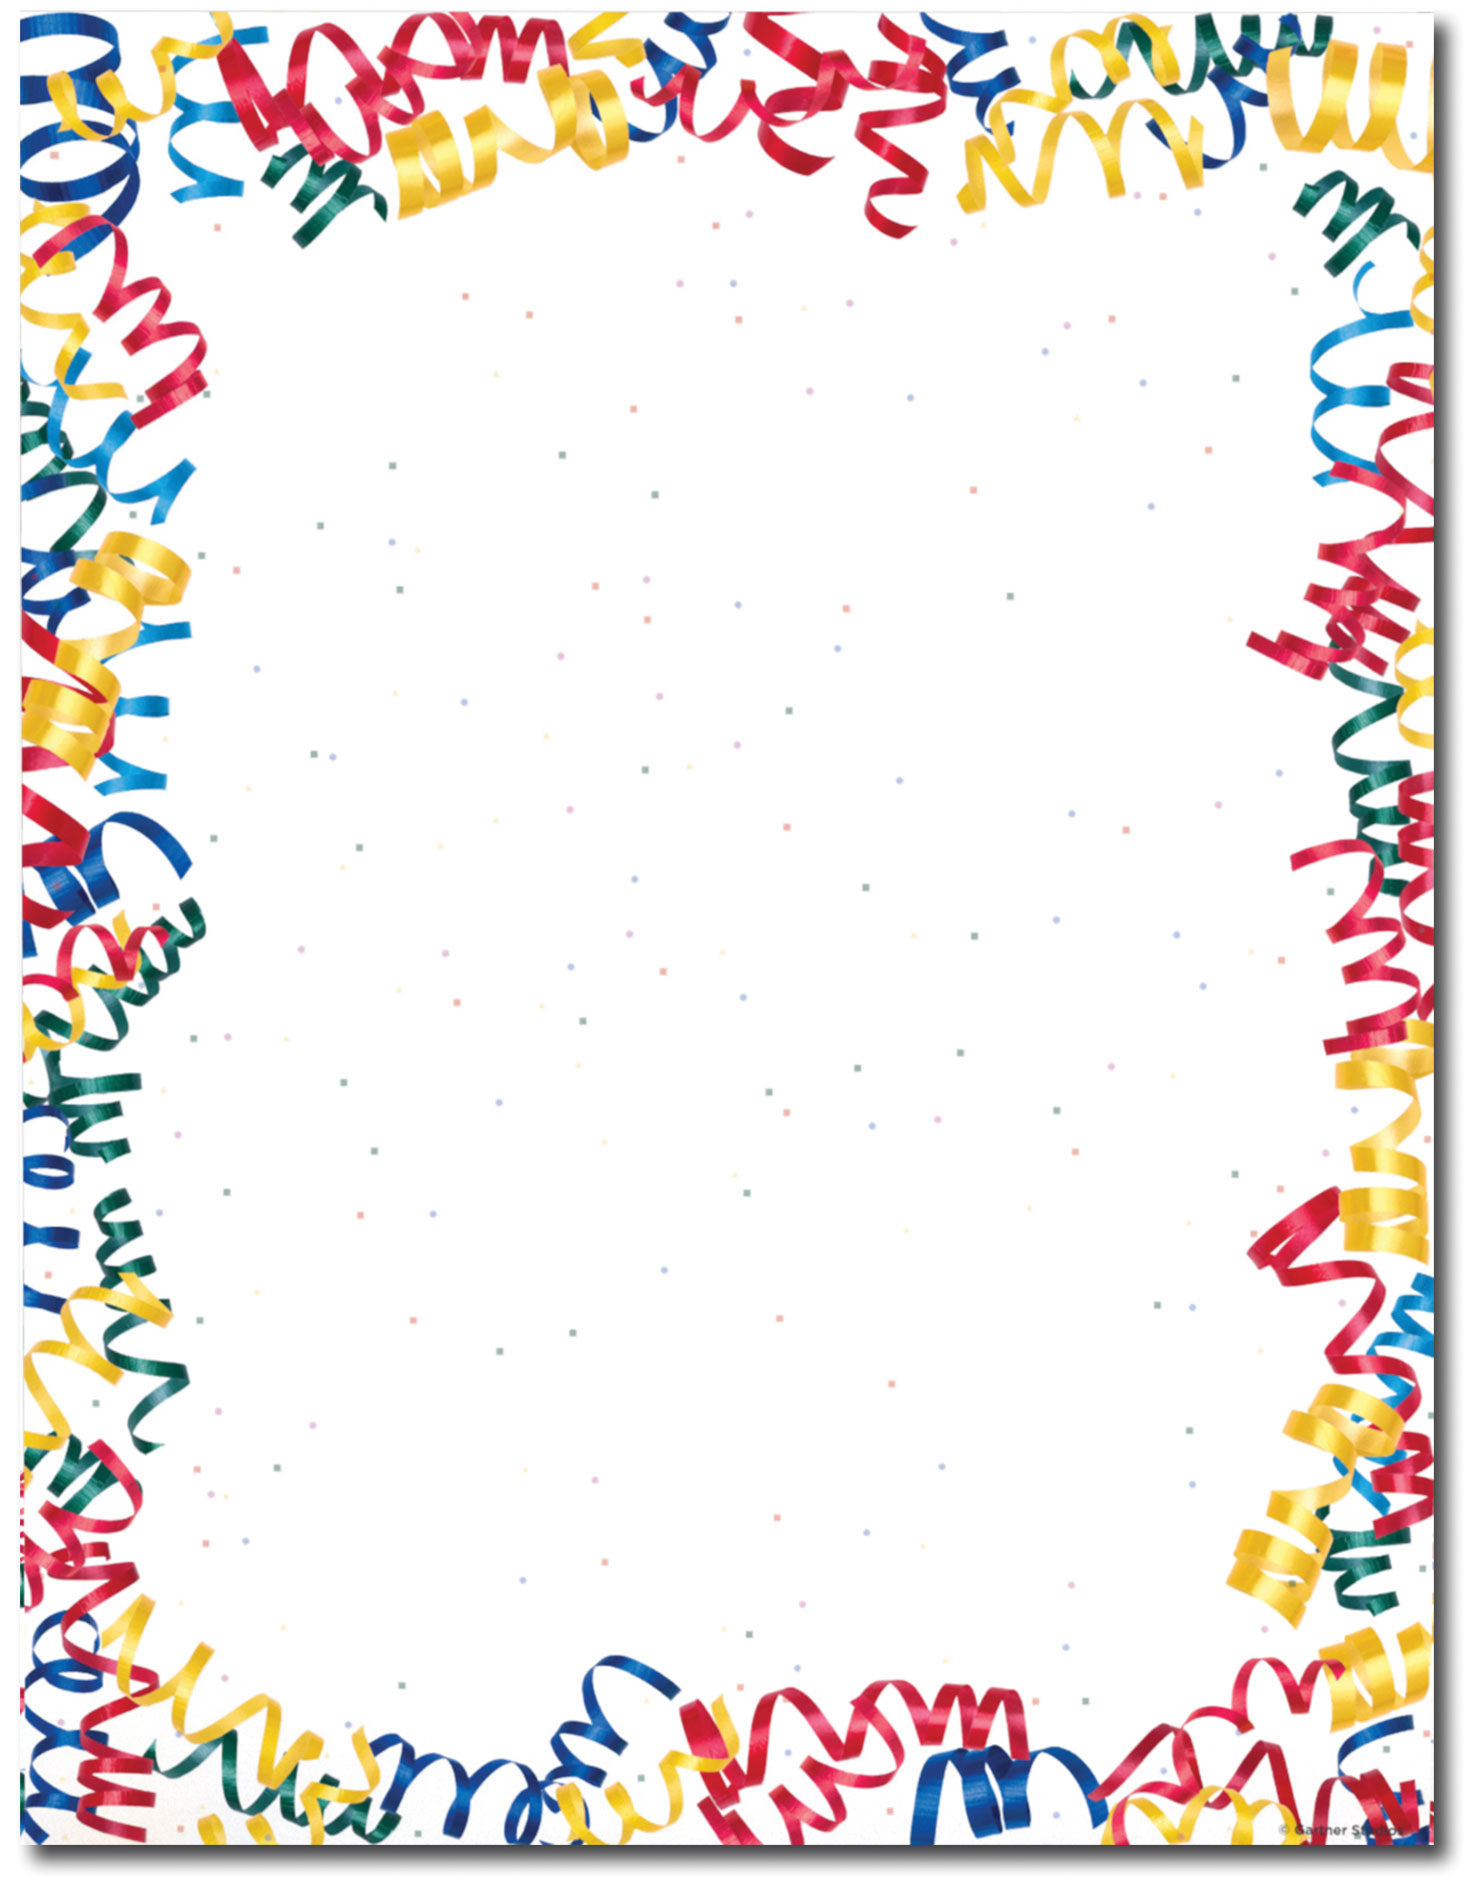 Streamers Border Clipart - Clipart Kid